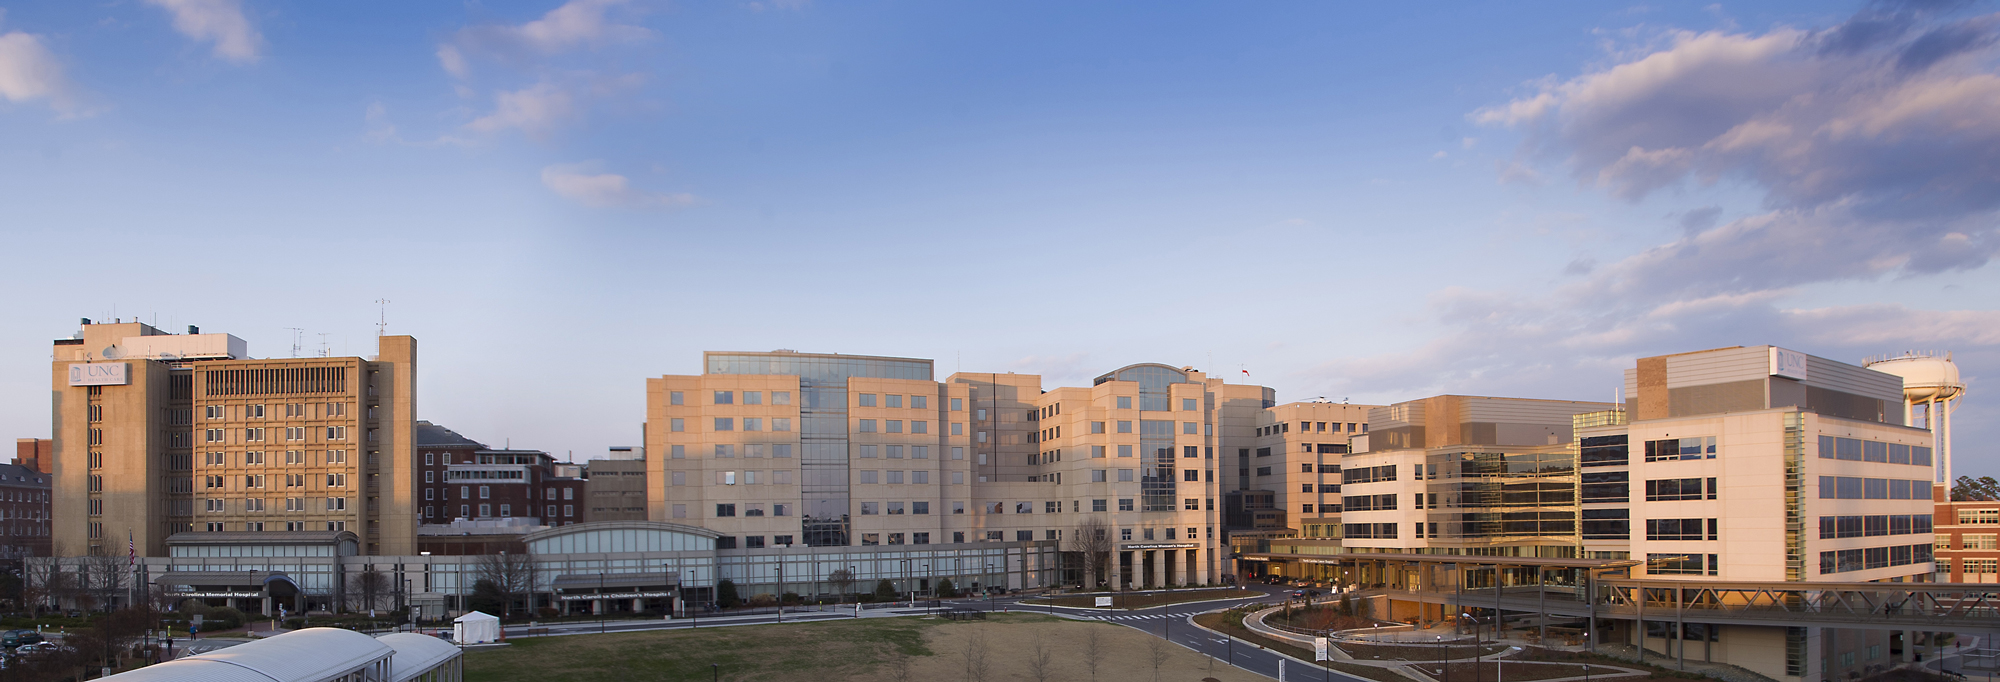 Research - UNC Department of Obstetrics & Gynecology